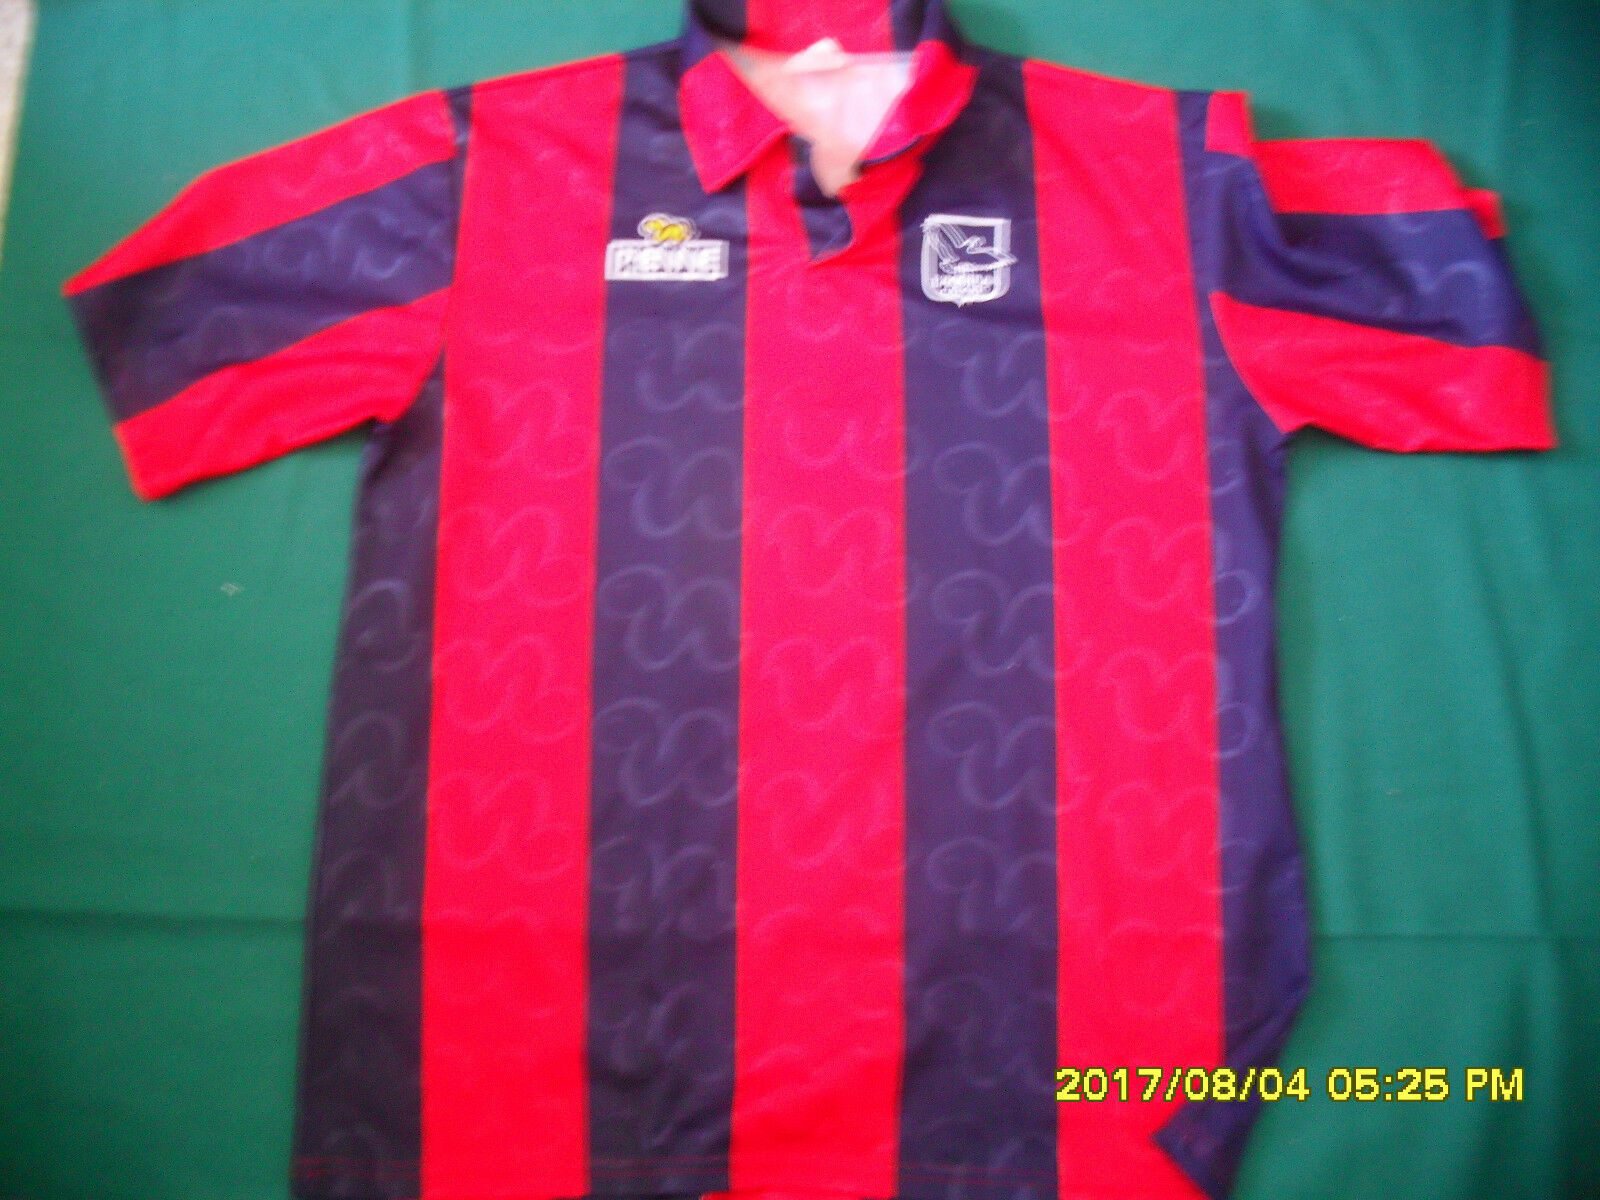 L'aquila calcio match worn maglia  calcio indossata football shirt pienne  contador genuino